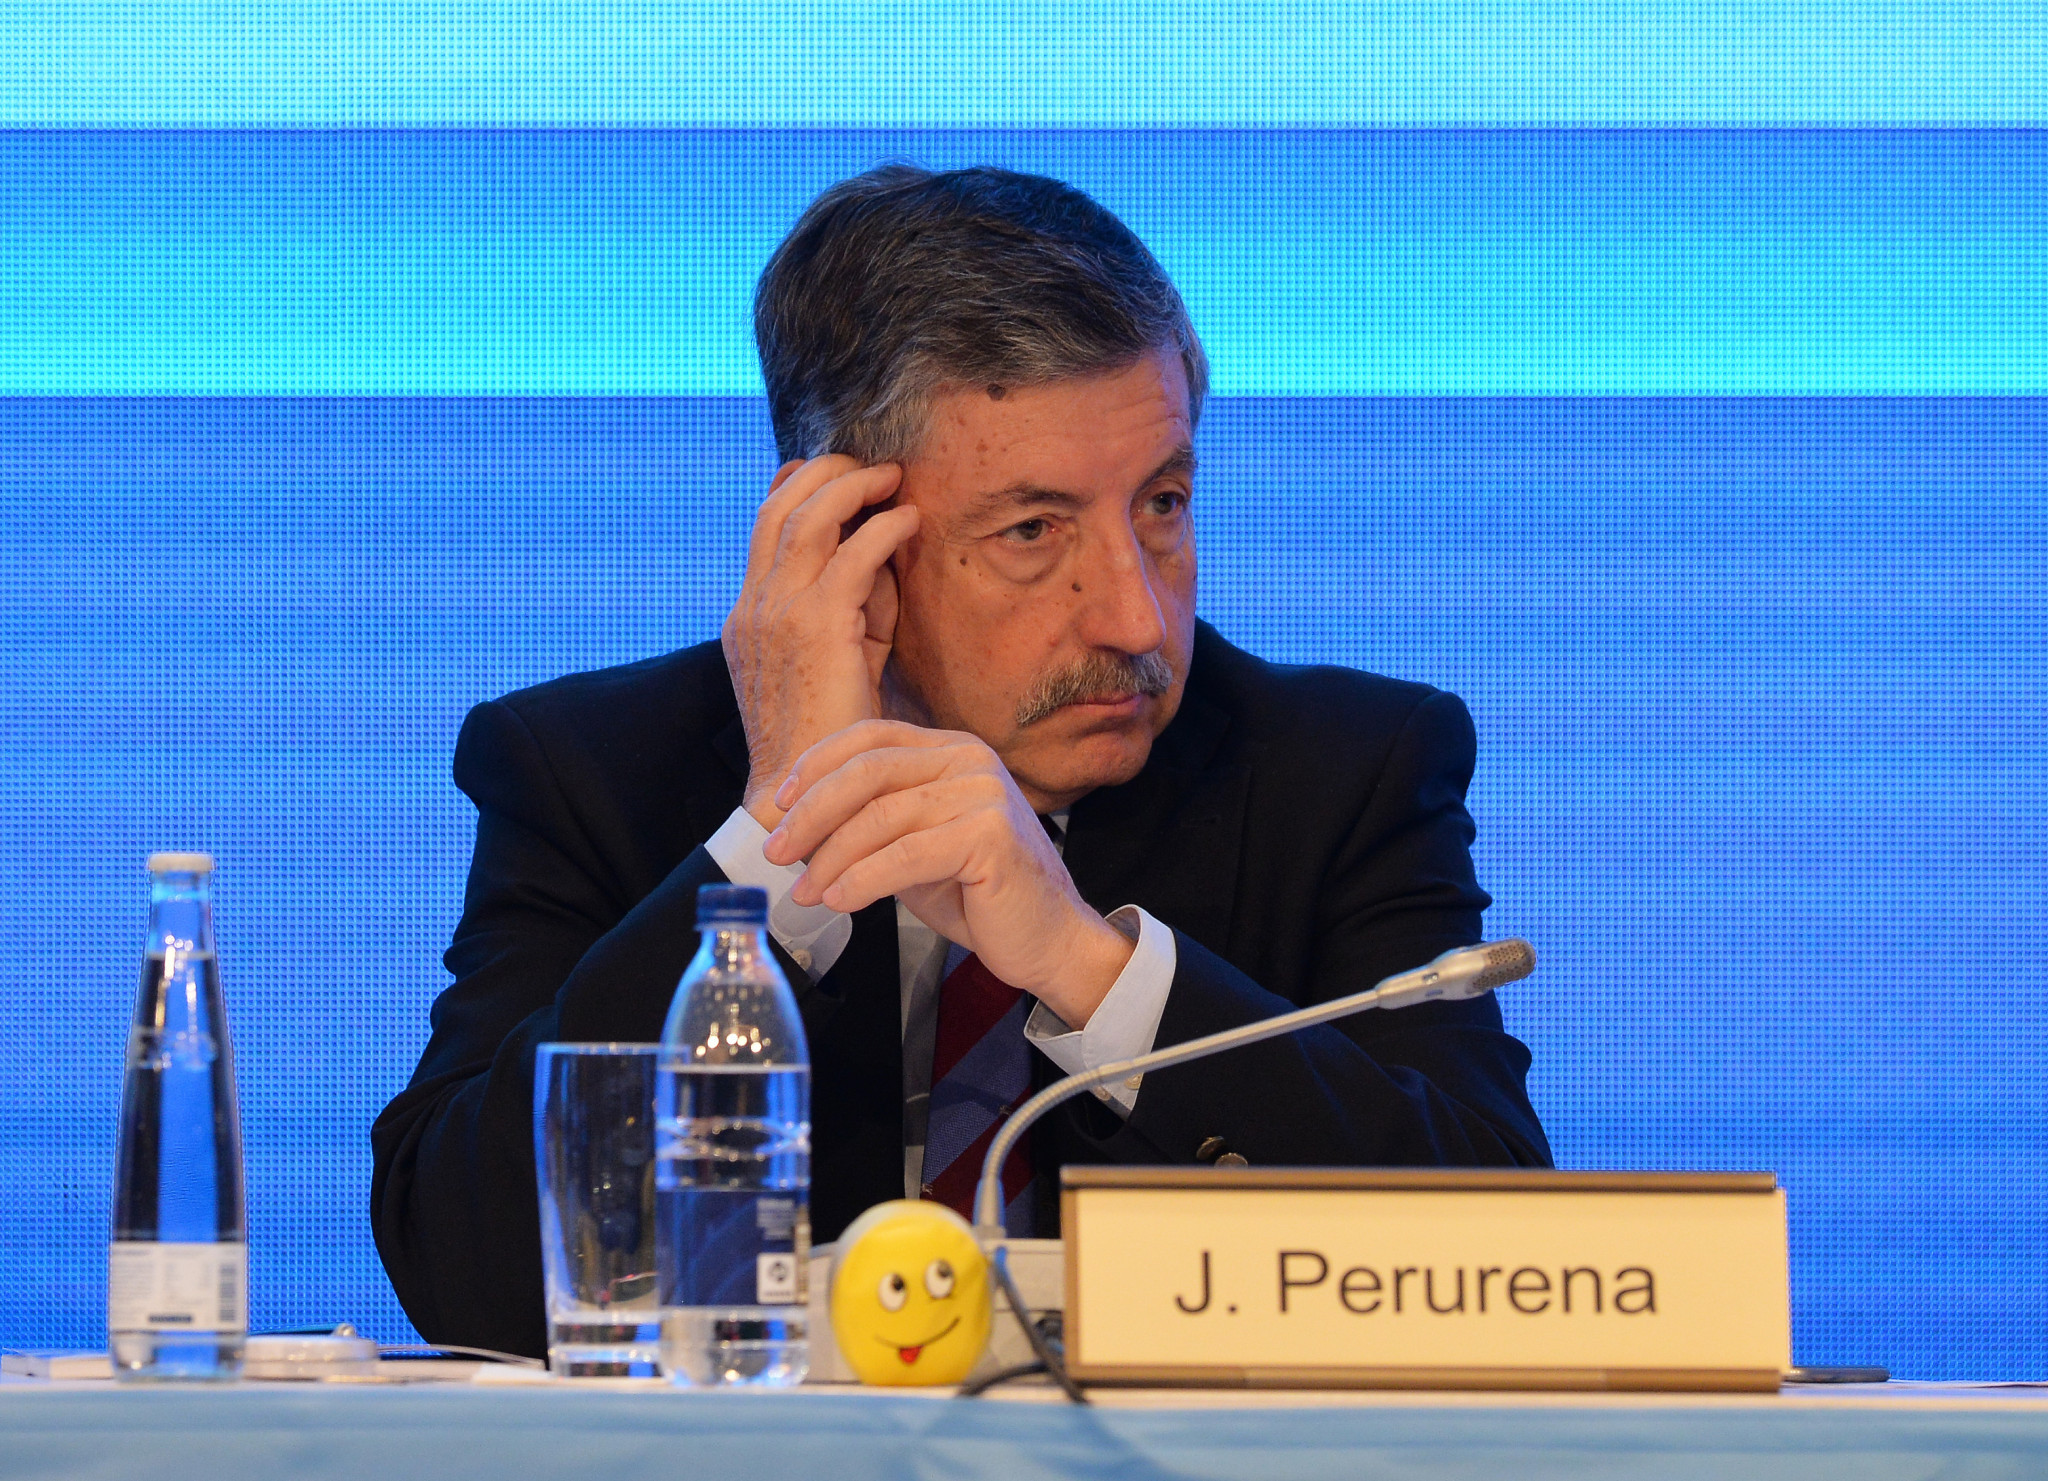 Current ICF President José Perurena is set to step down next year ©Getty Images